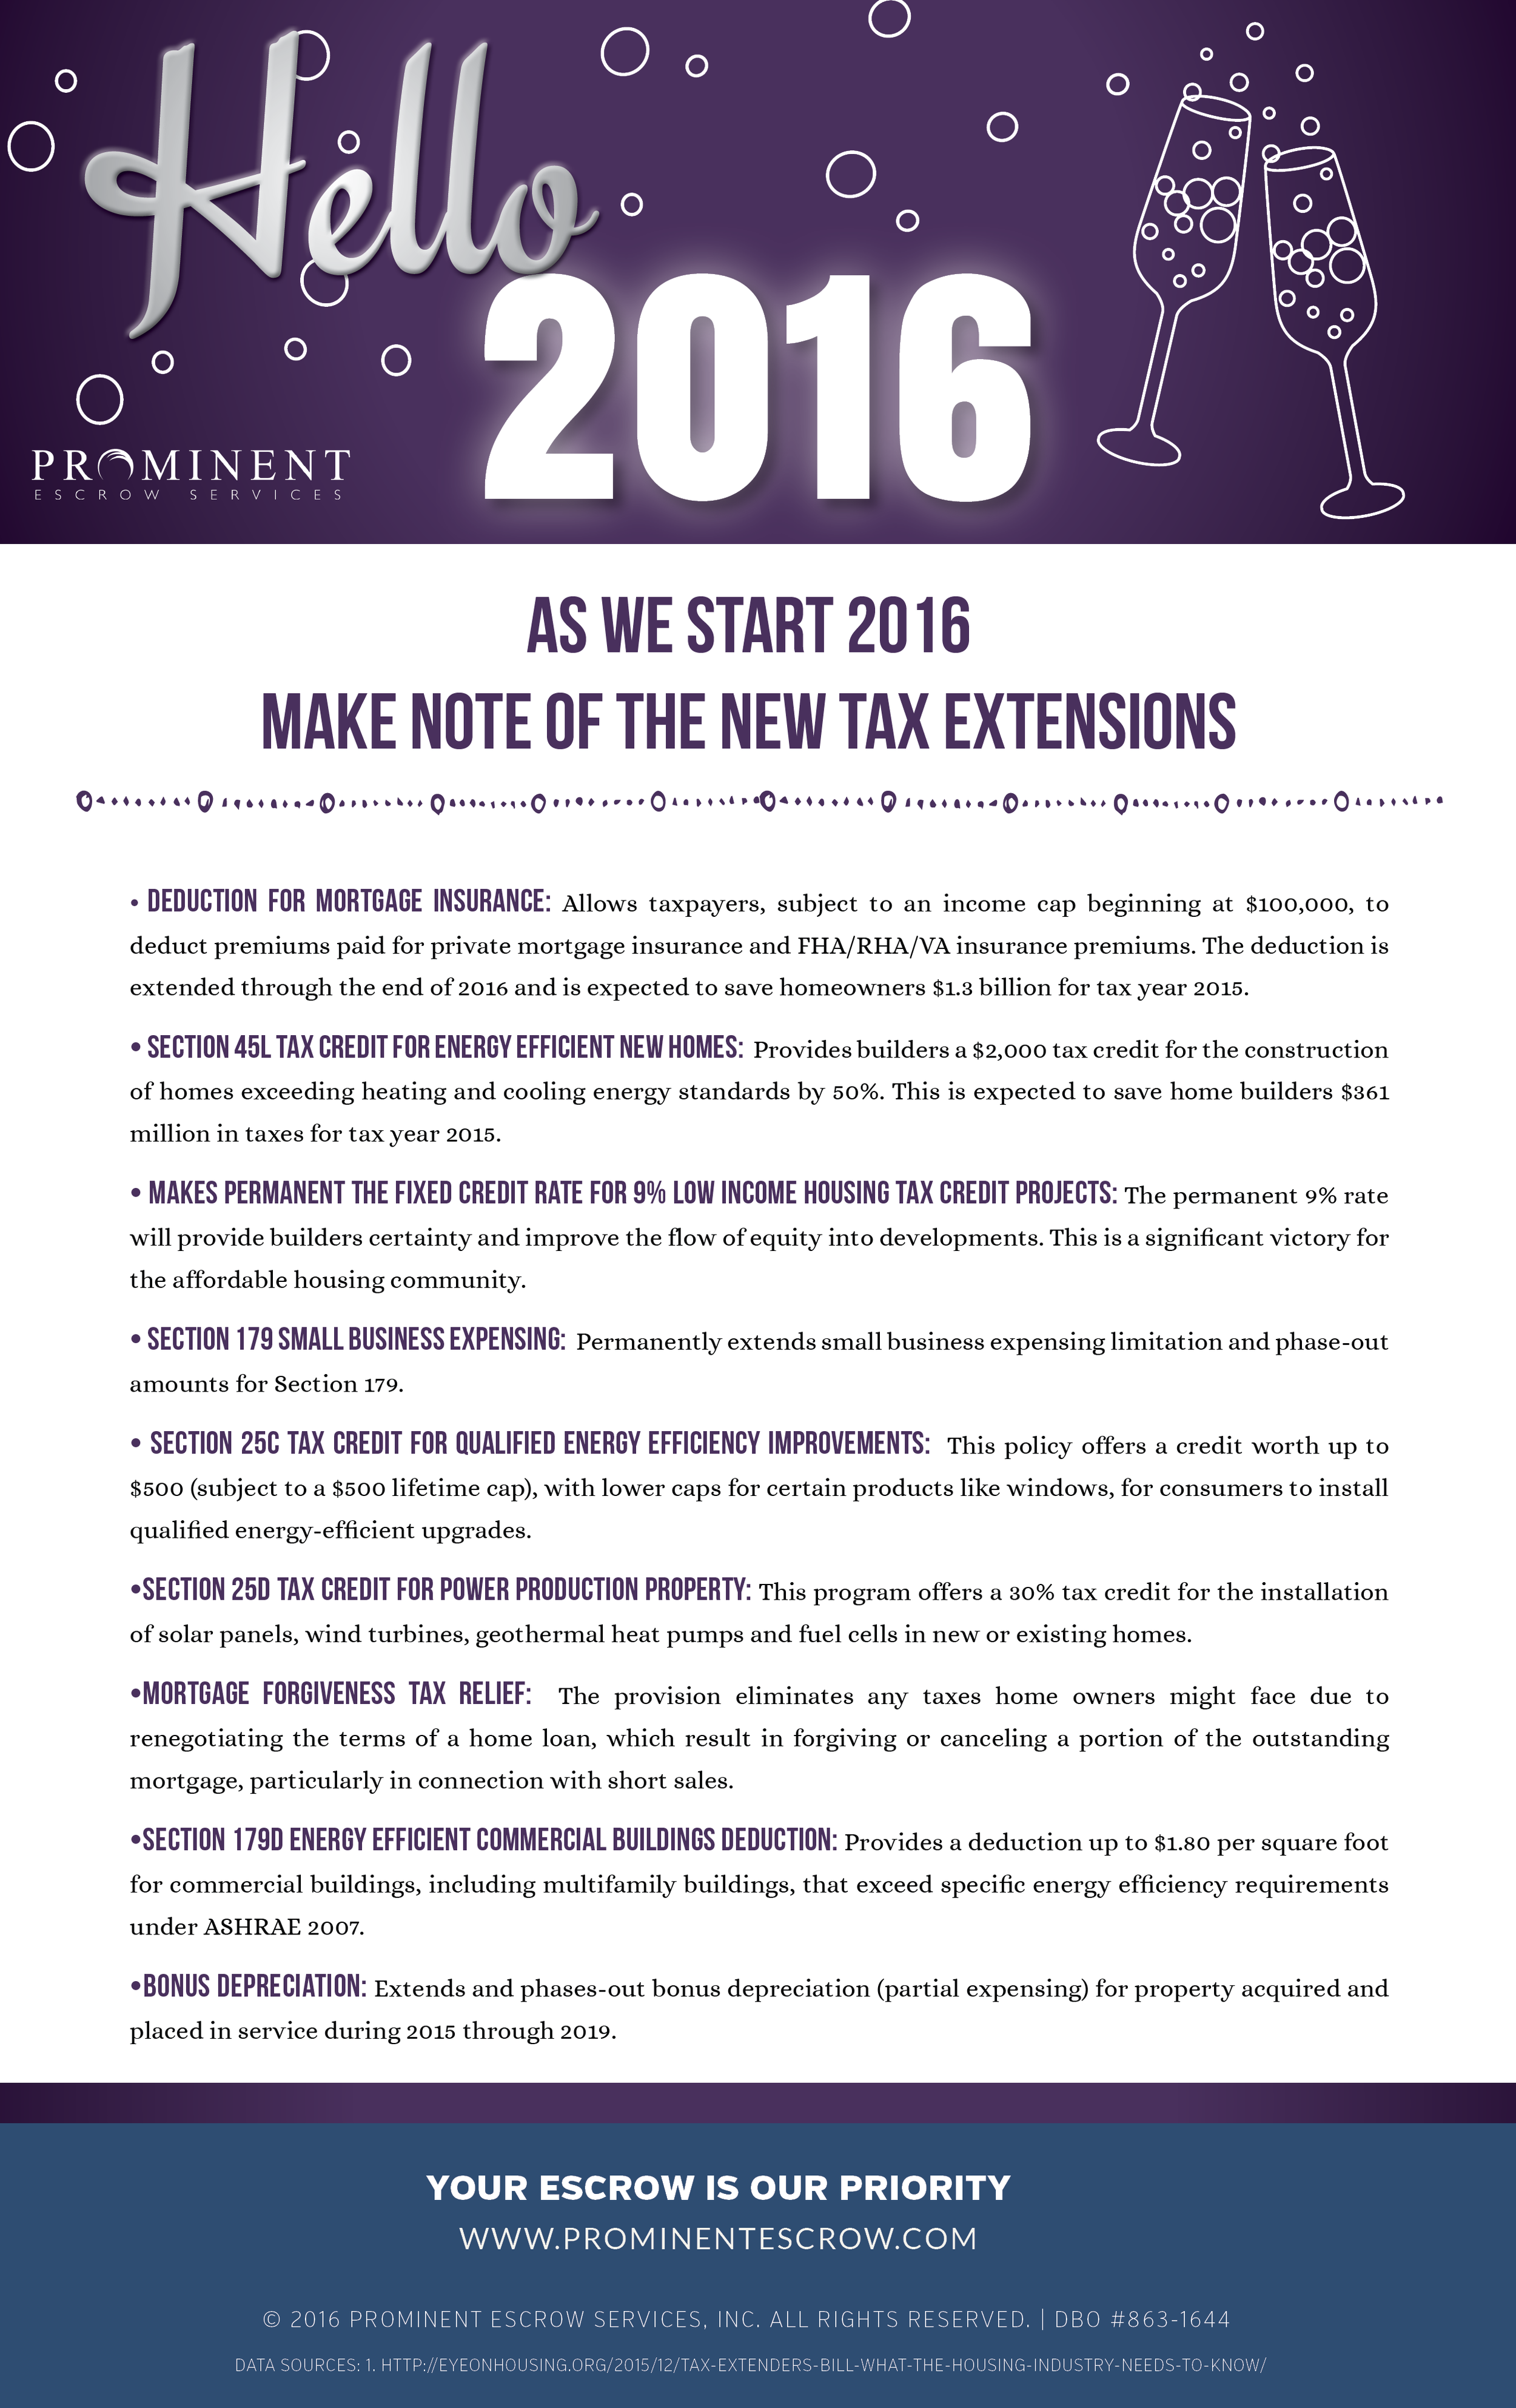 1-5-16 Hello-2016-New-Tax-Extensions.png